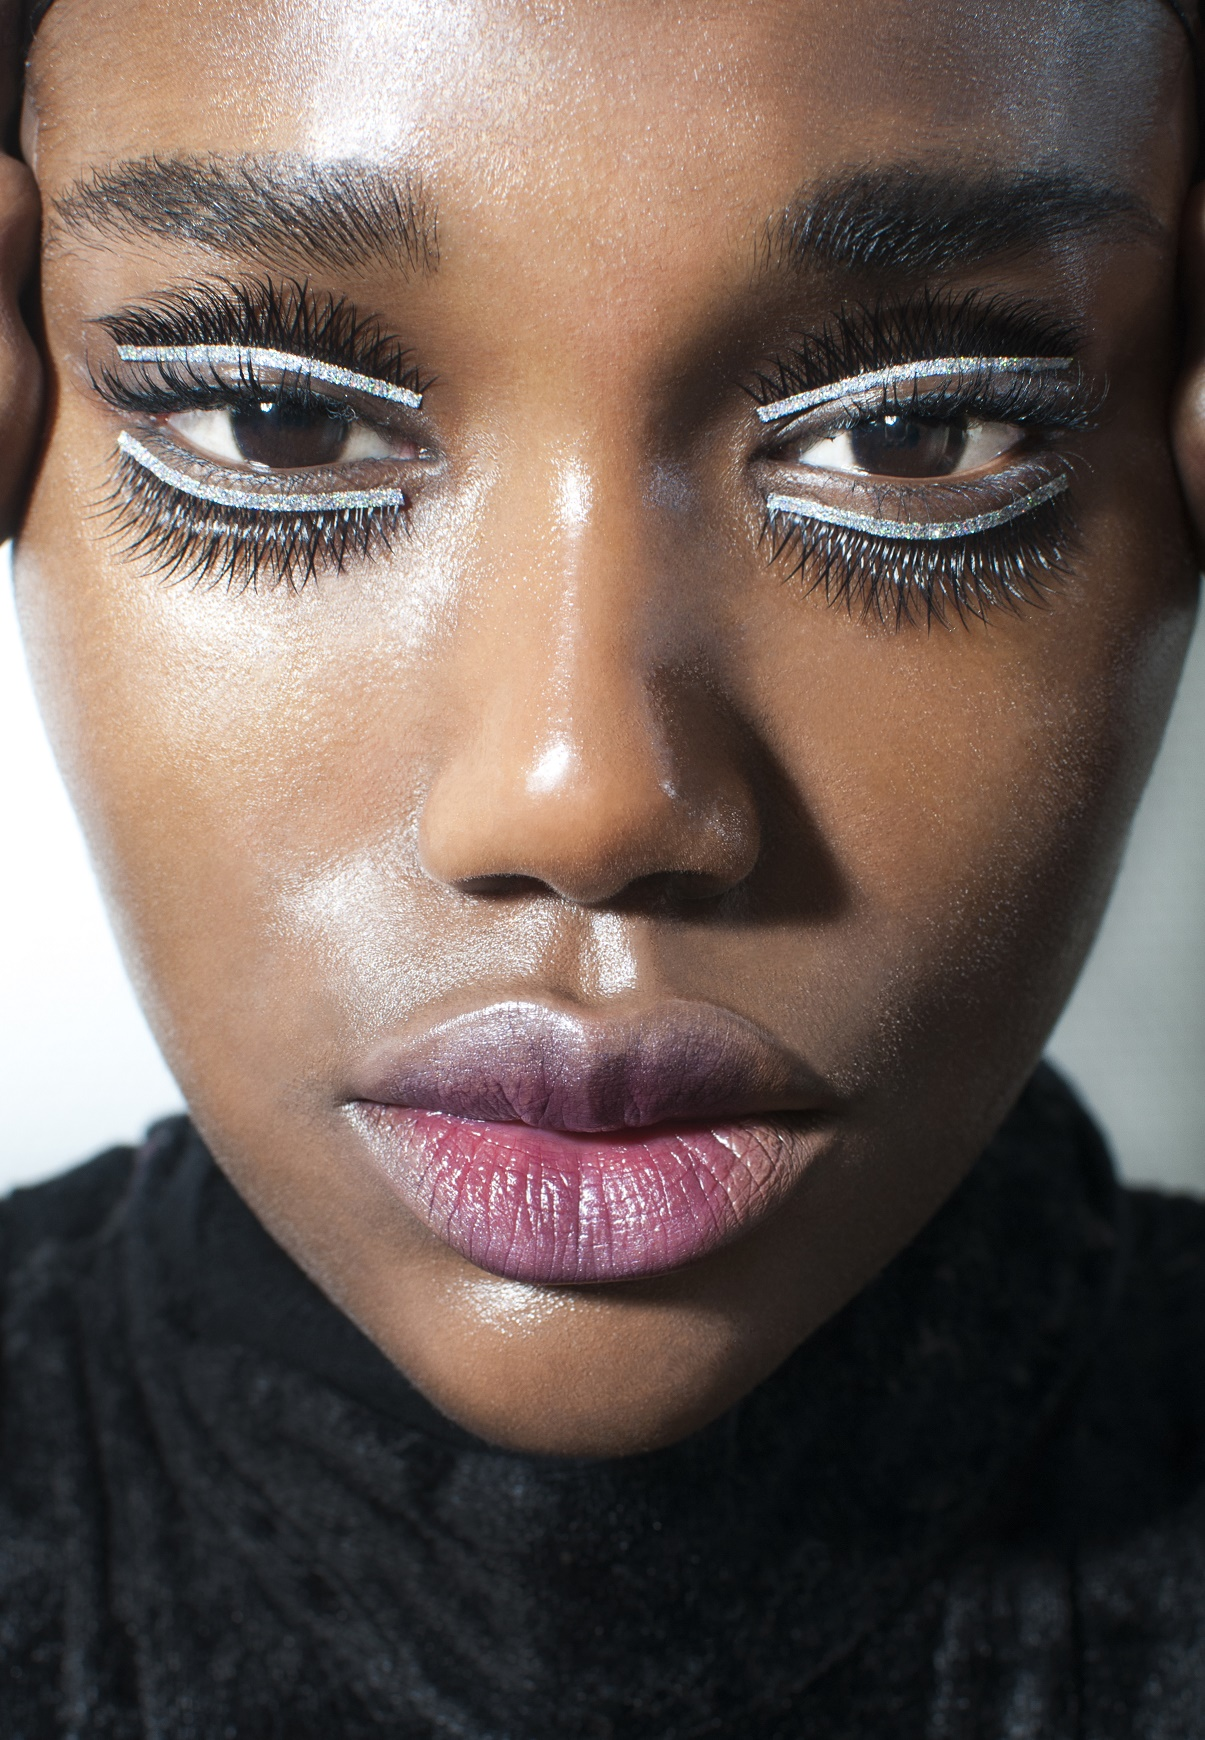 In A Blink Of An Eye: A Beauty Editorial By Vivienne Moon